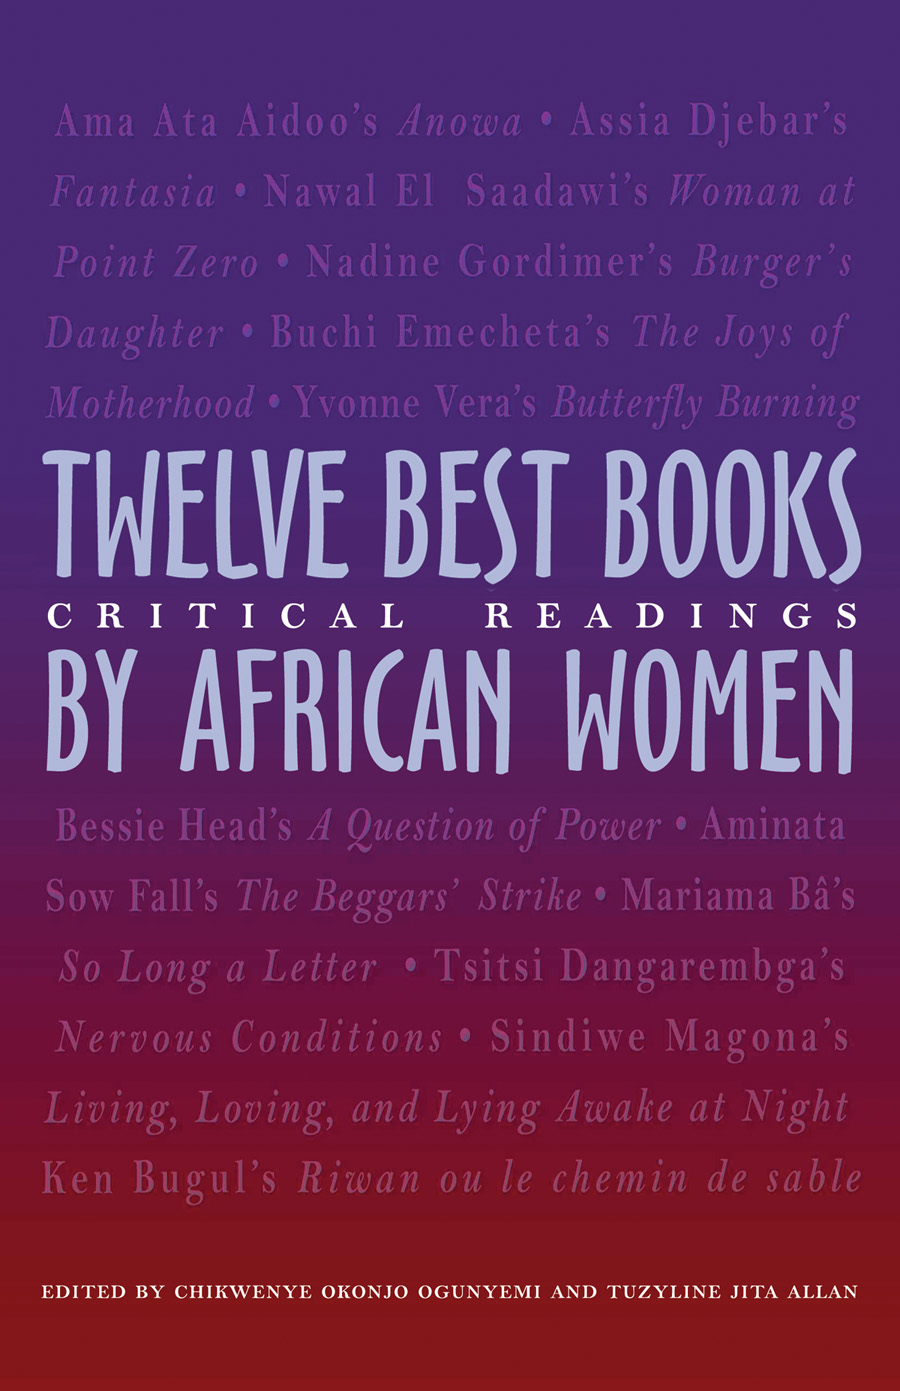 the twelve best books by african women middot ohio university press cover